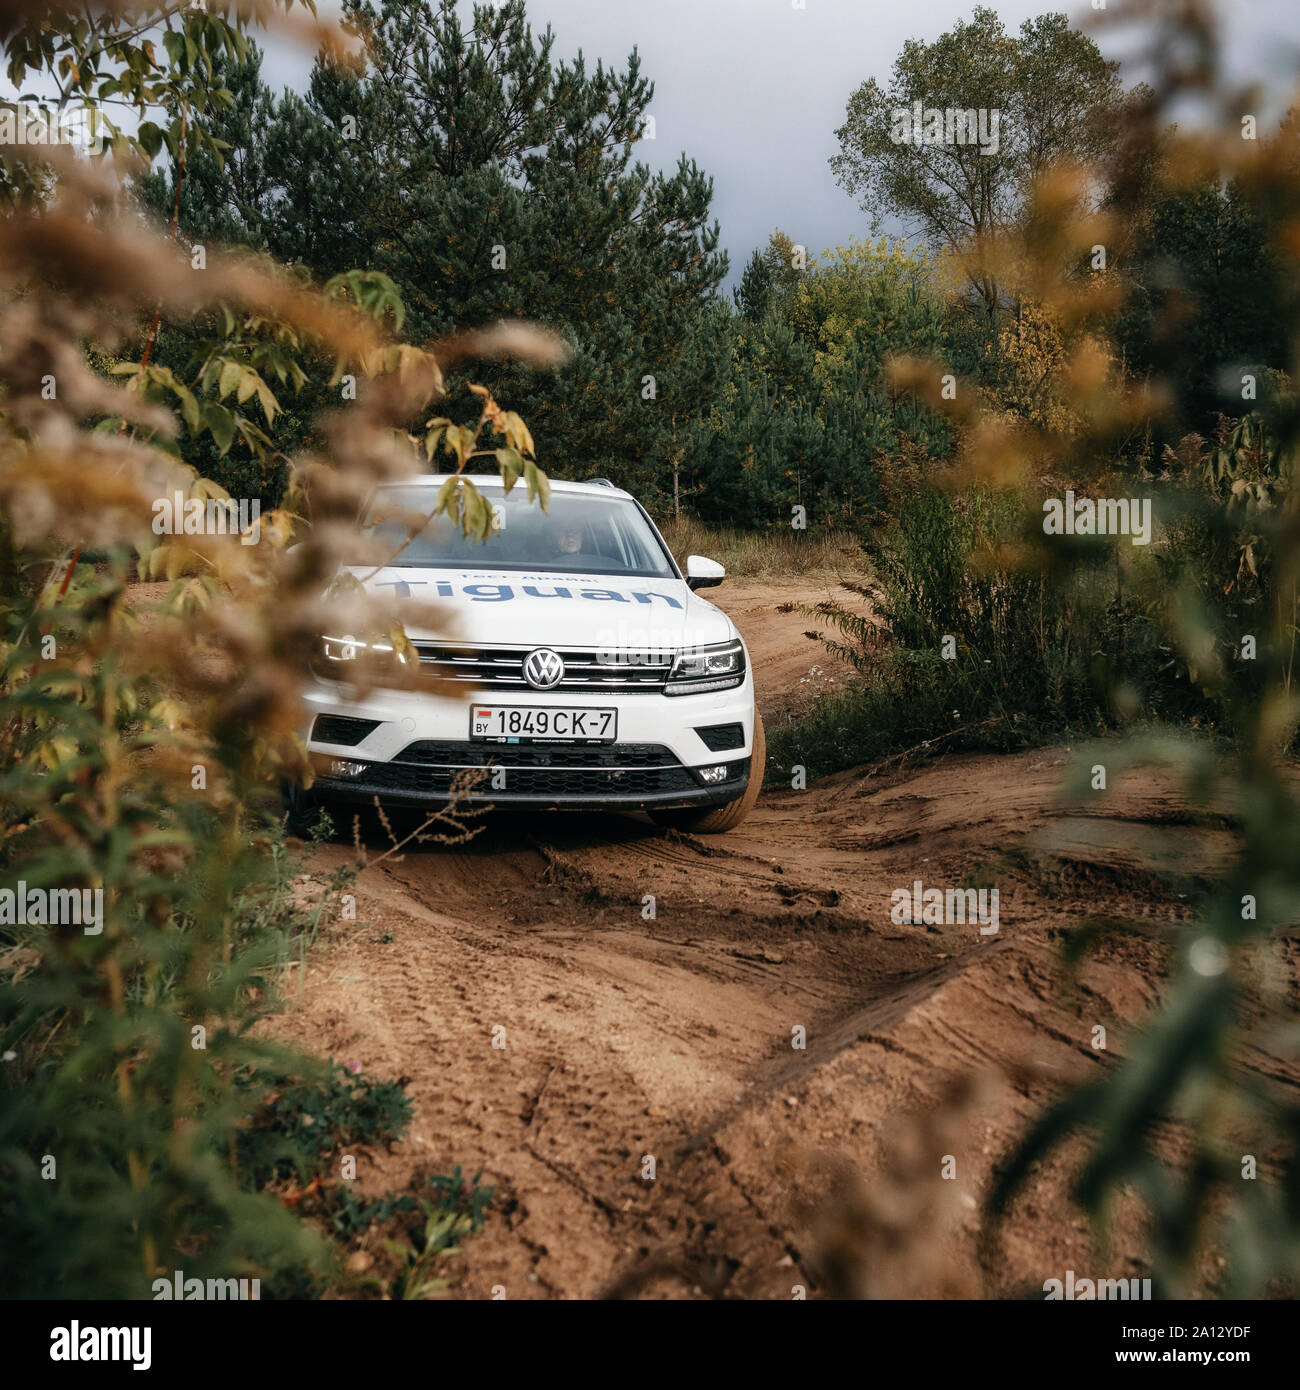 Cross Country 4x4 >> Minsk Belarus September 20 2019 Volkswagen Tiguan 4x4